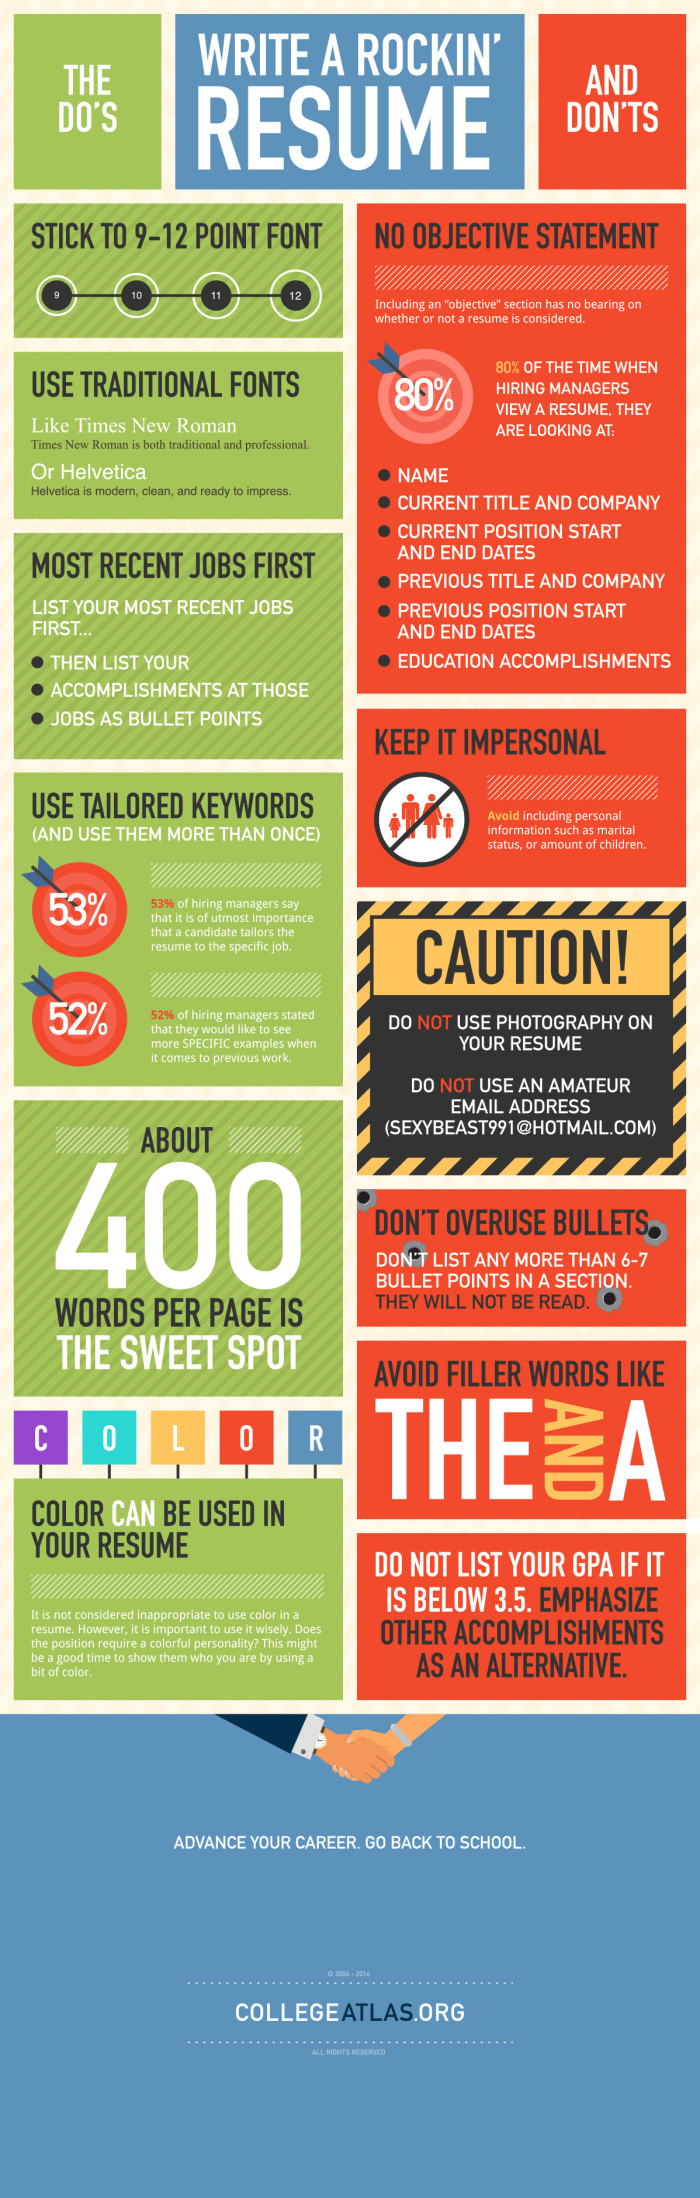 The Dos and Donts to Writing a Rockin Resume INFOGRAPHIC